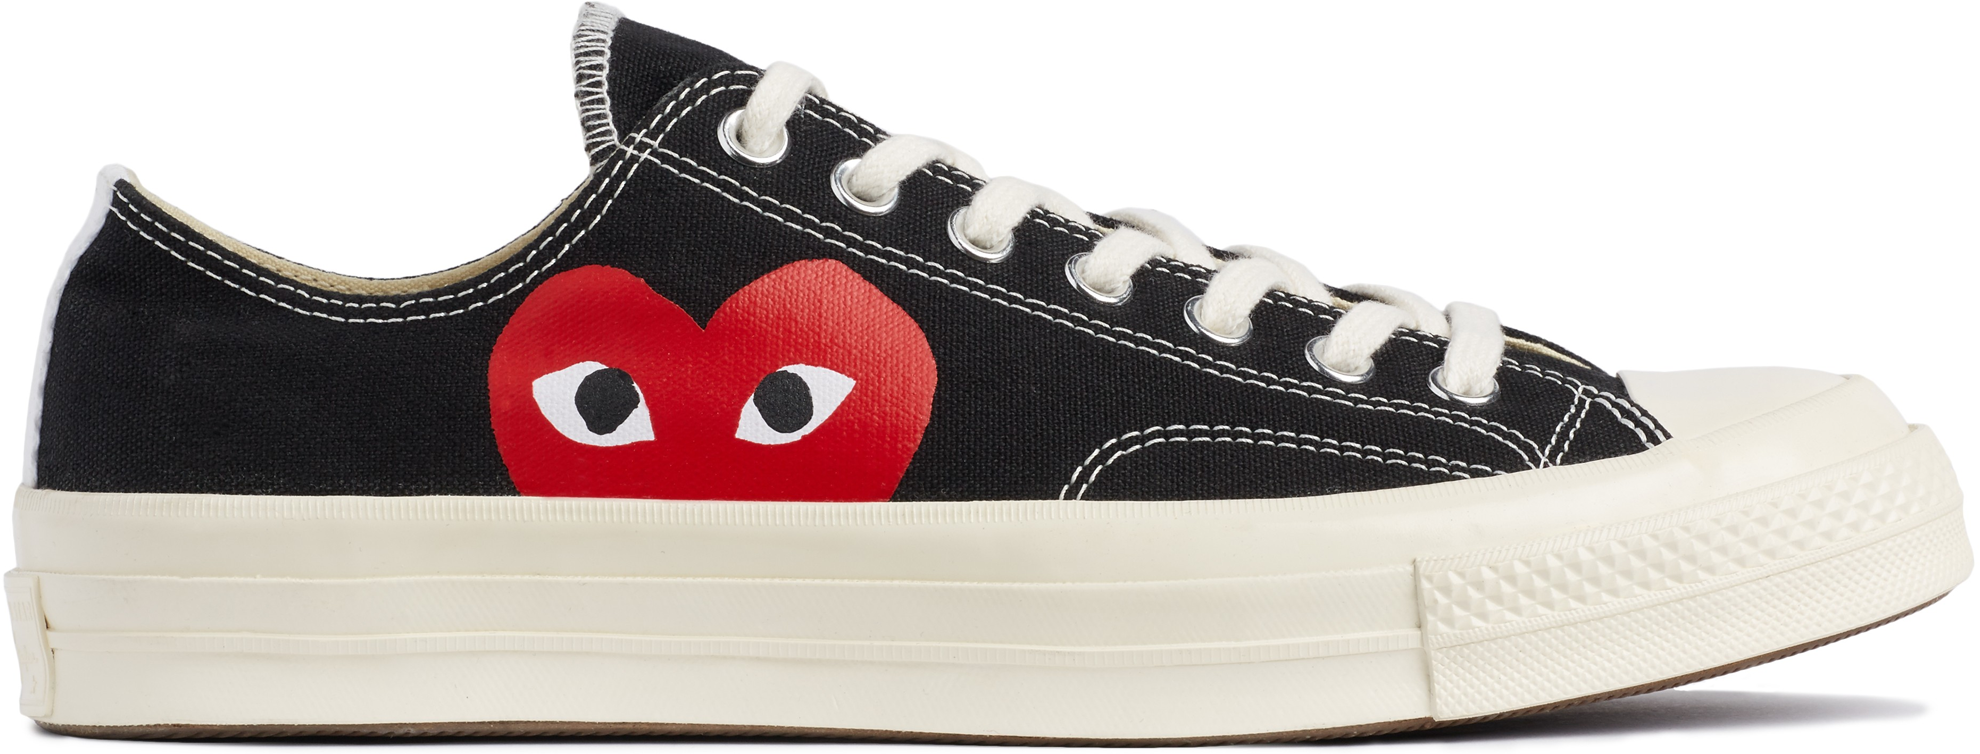 Converse Chuck Taylor All Star 70s Ox Comme Des Garcons